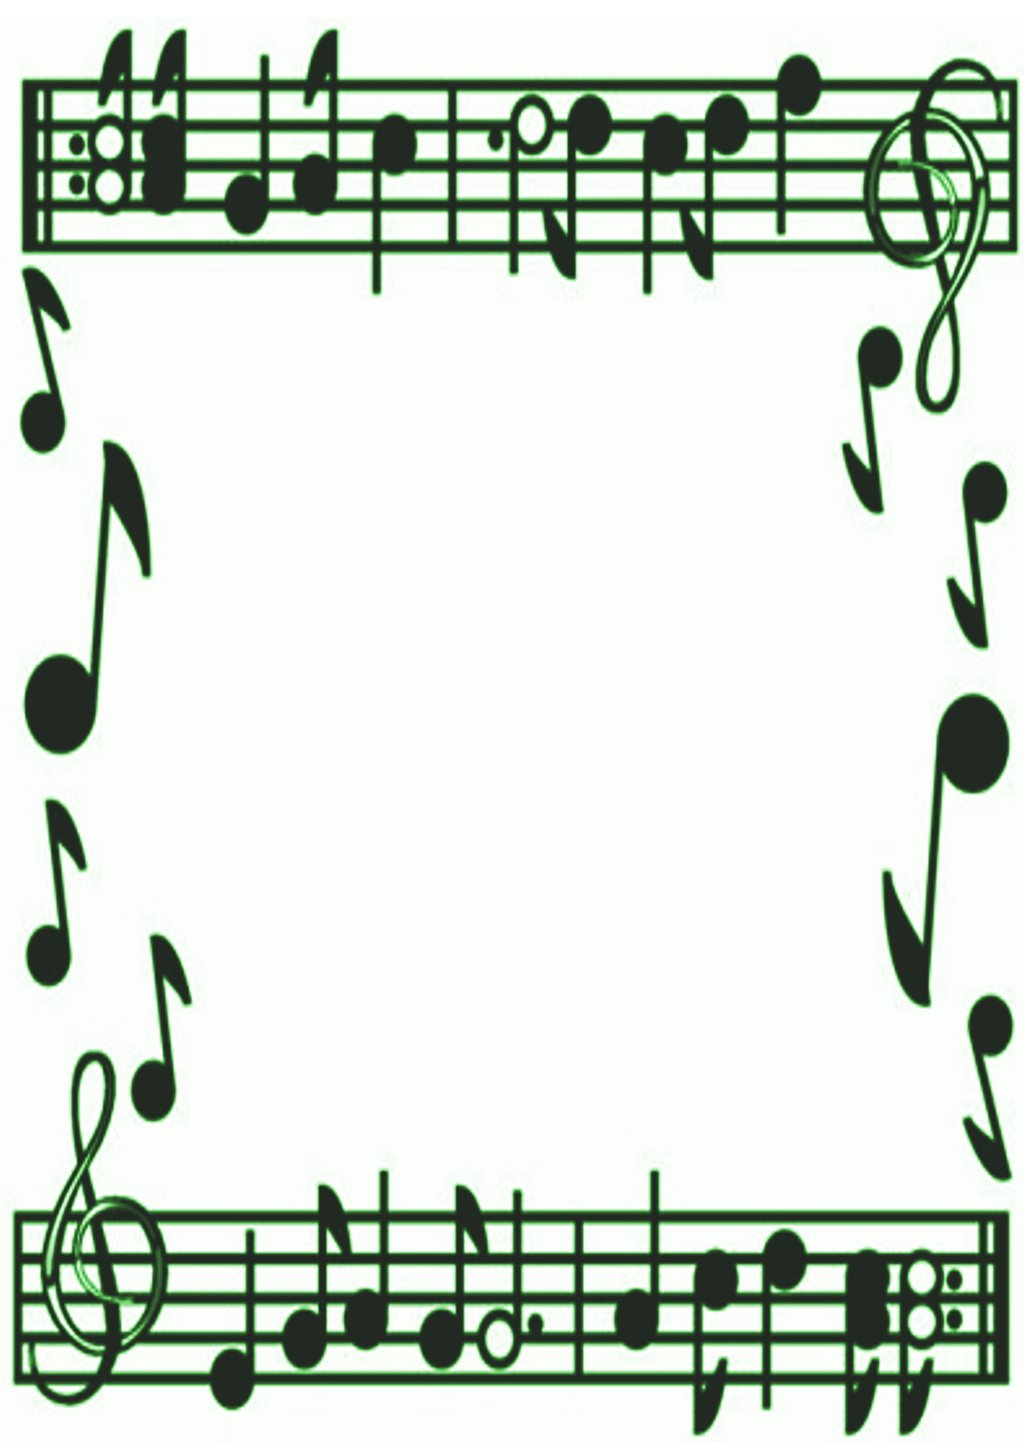 Music Notes Borders Frames Free.